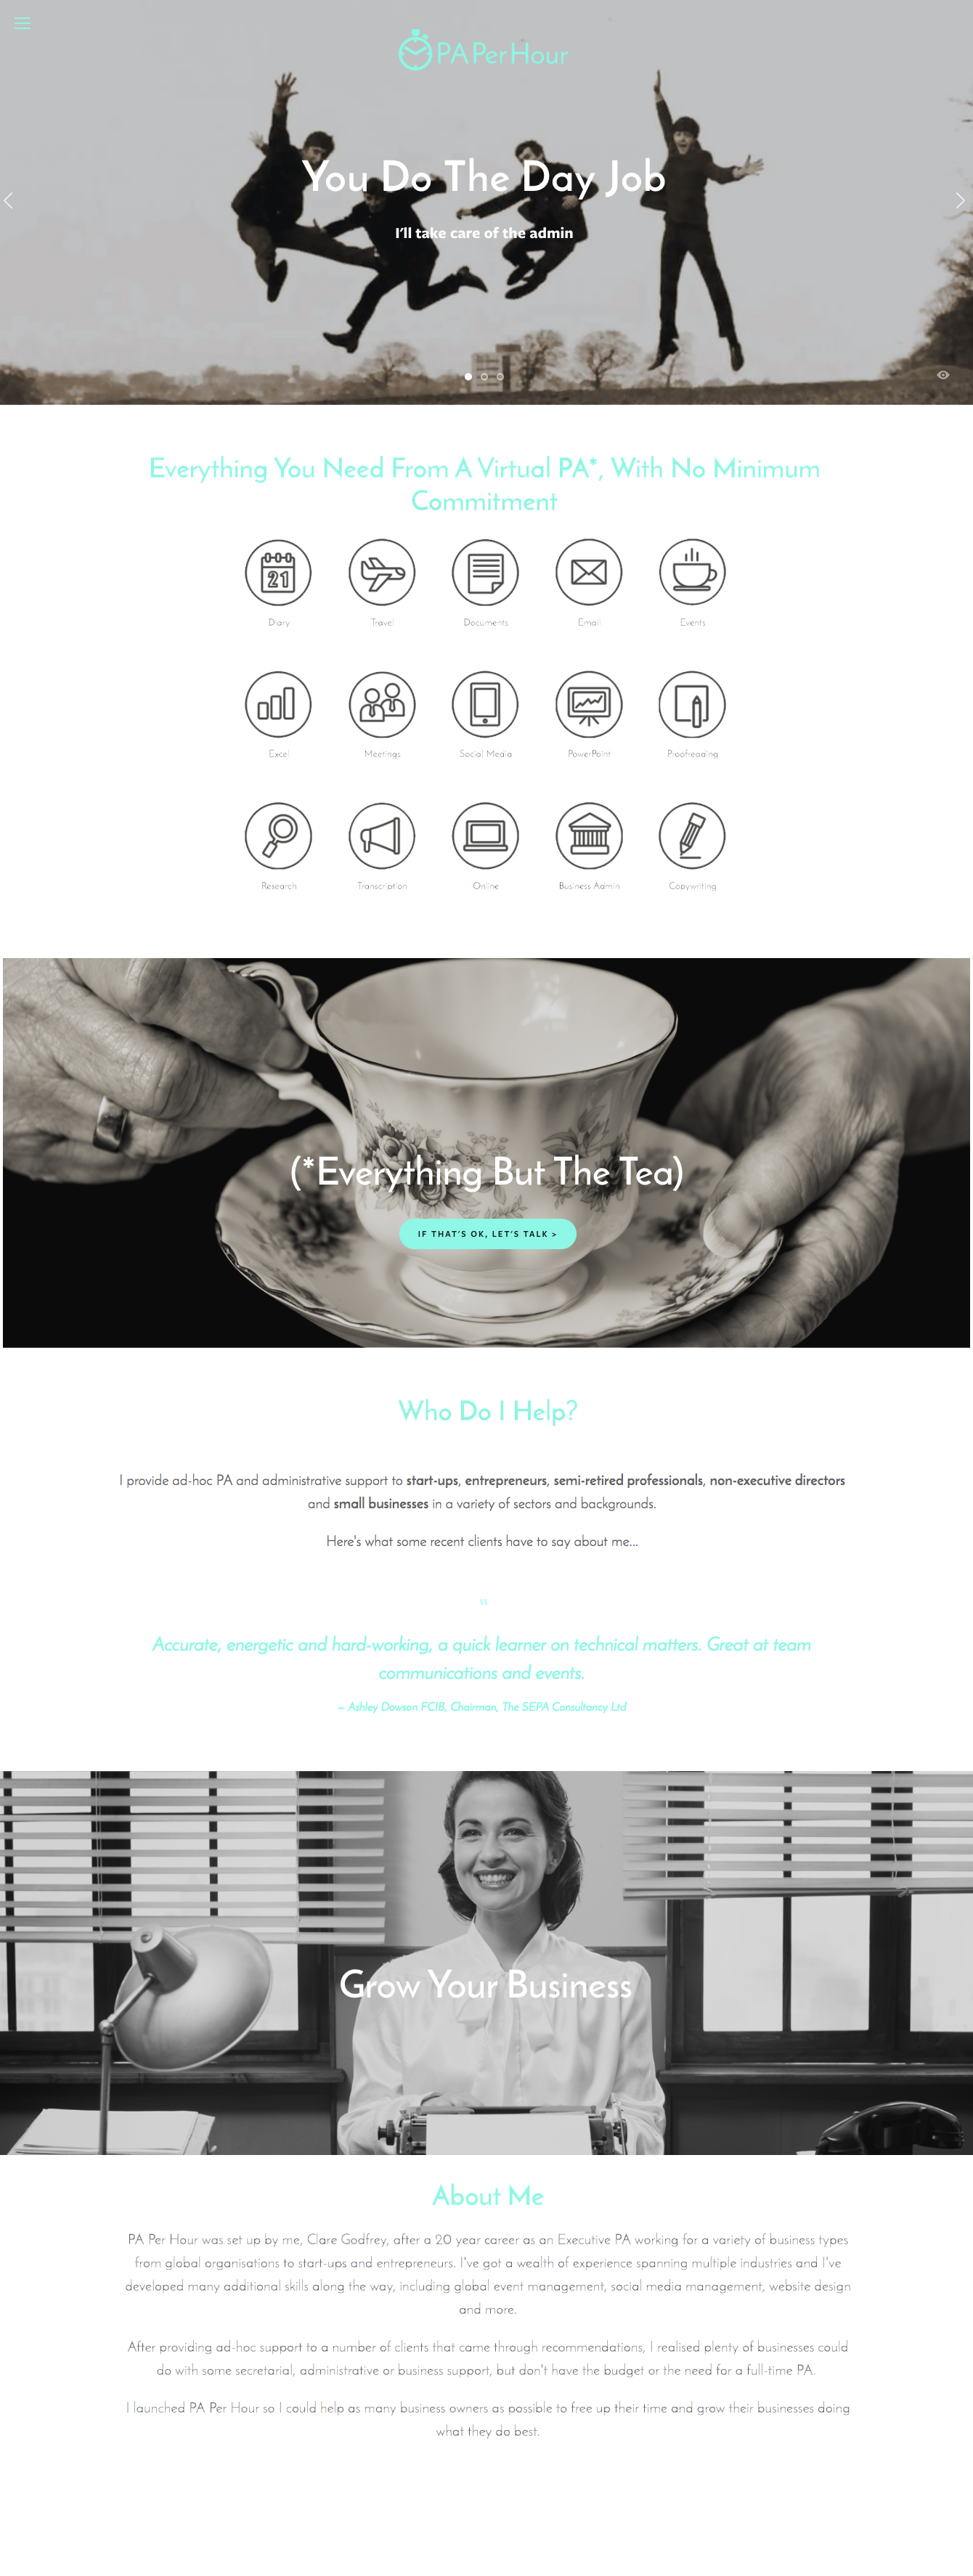 The new website uses retro black and white images to feature the biggest benefits of using a virtual PA. It suits PA Per Hour's laid-back yet client-driven style.